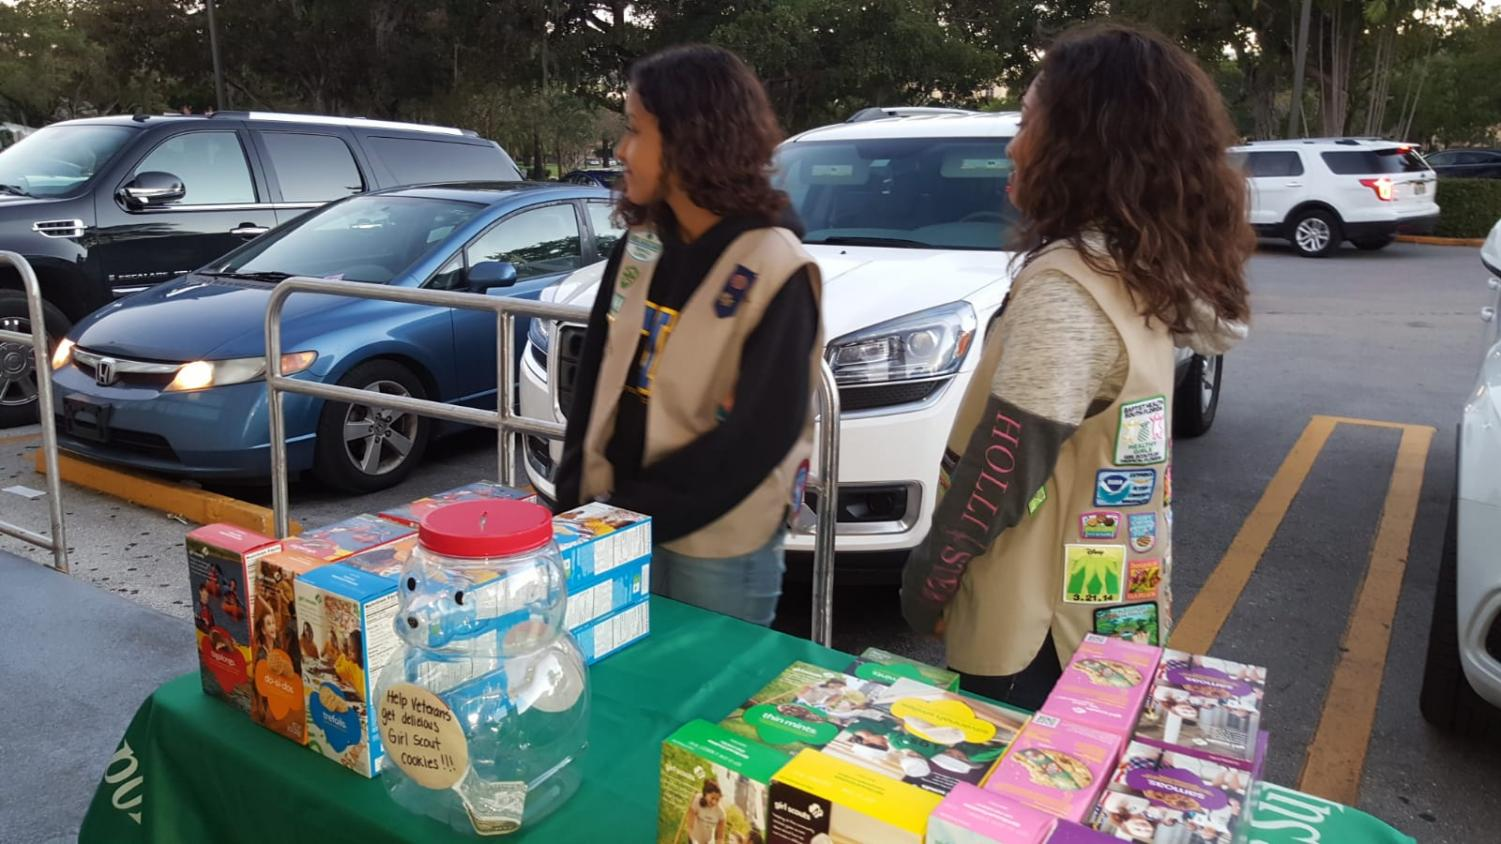 Girl scouts selling cookies to raise money.